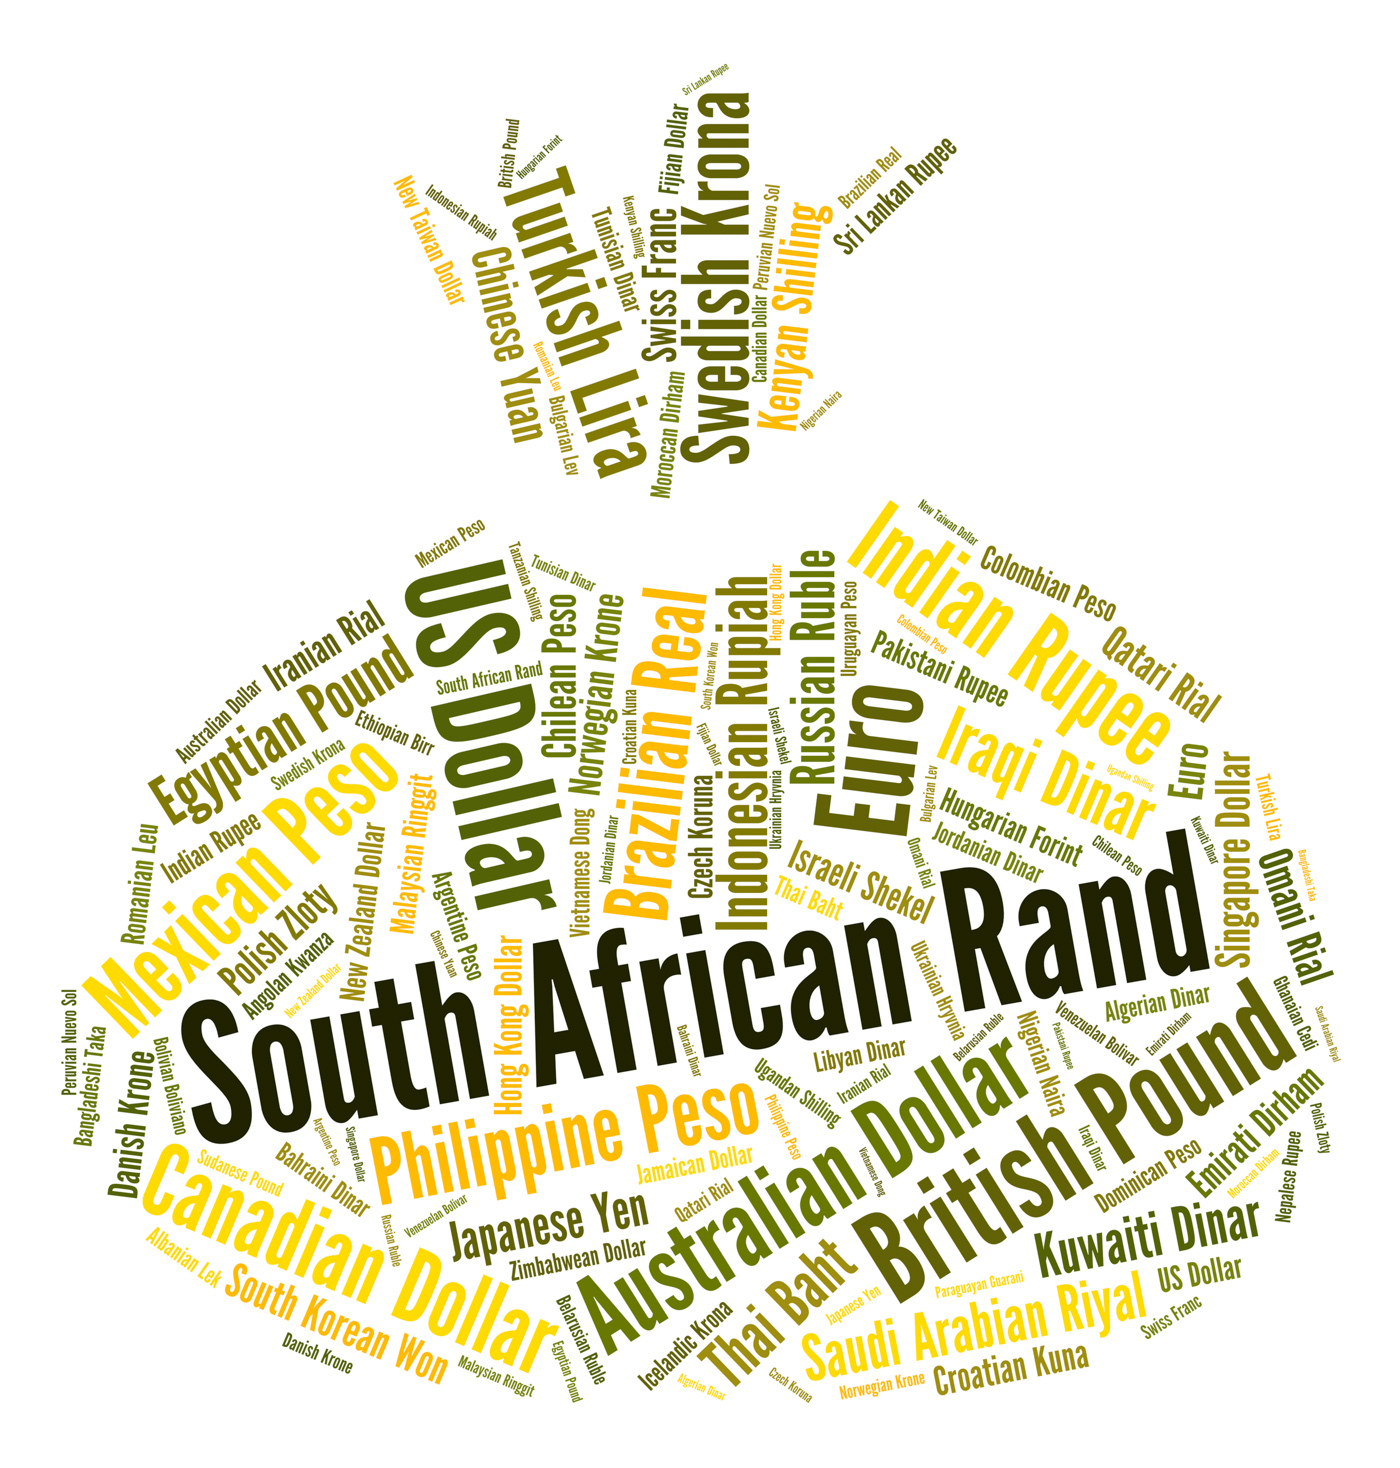 South african rand indicates exchange rate and coinage photo